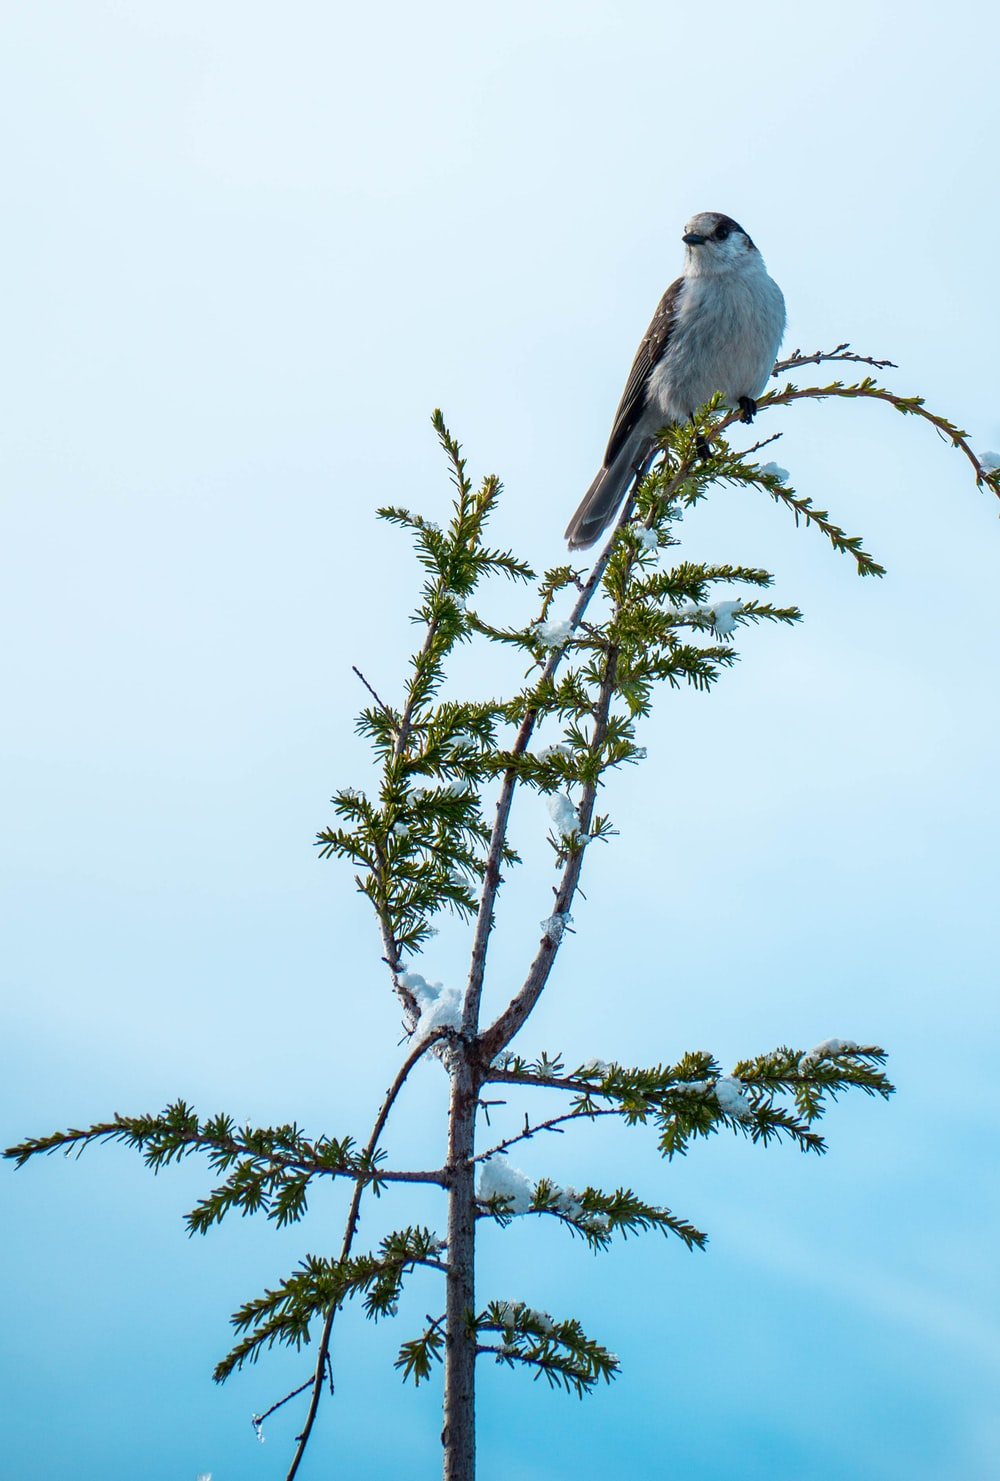 selective focus photography of gray bird on tree